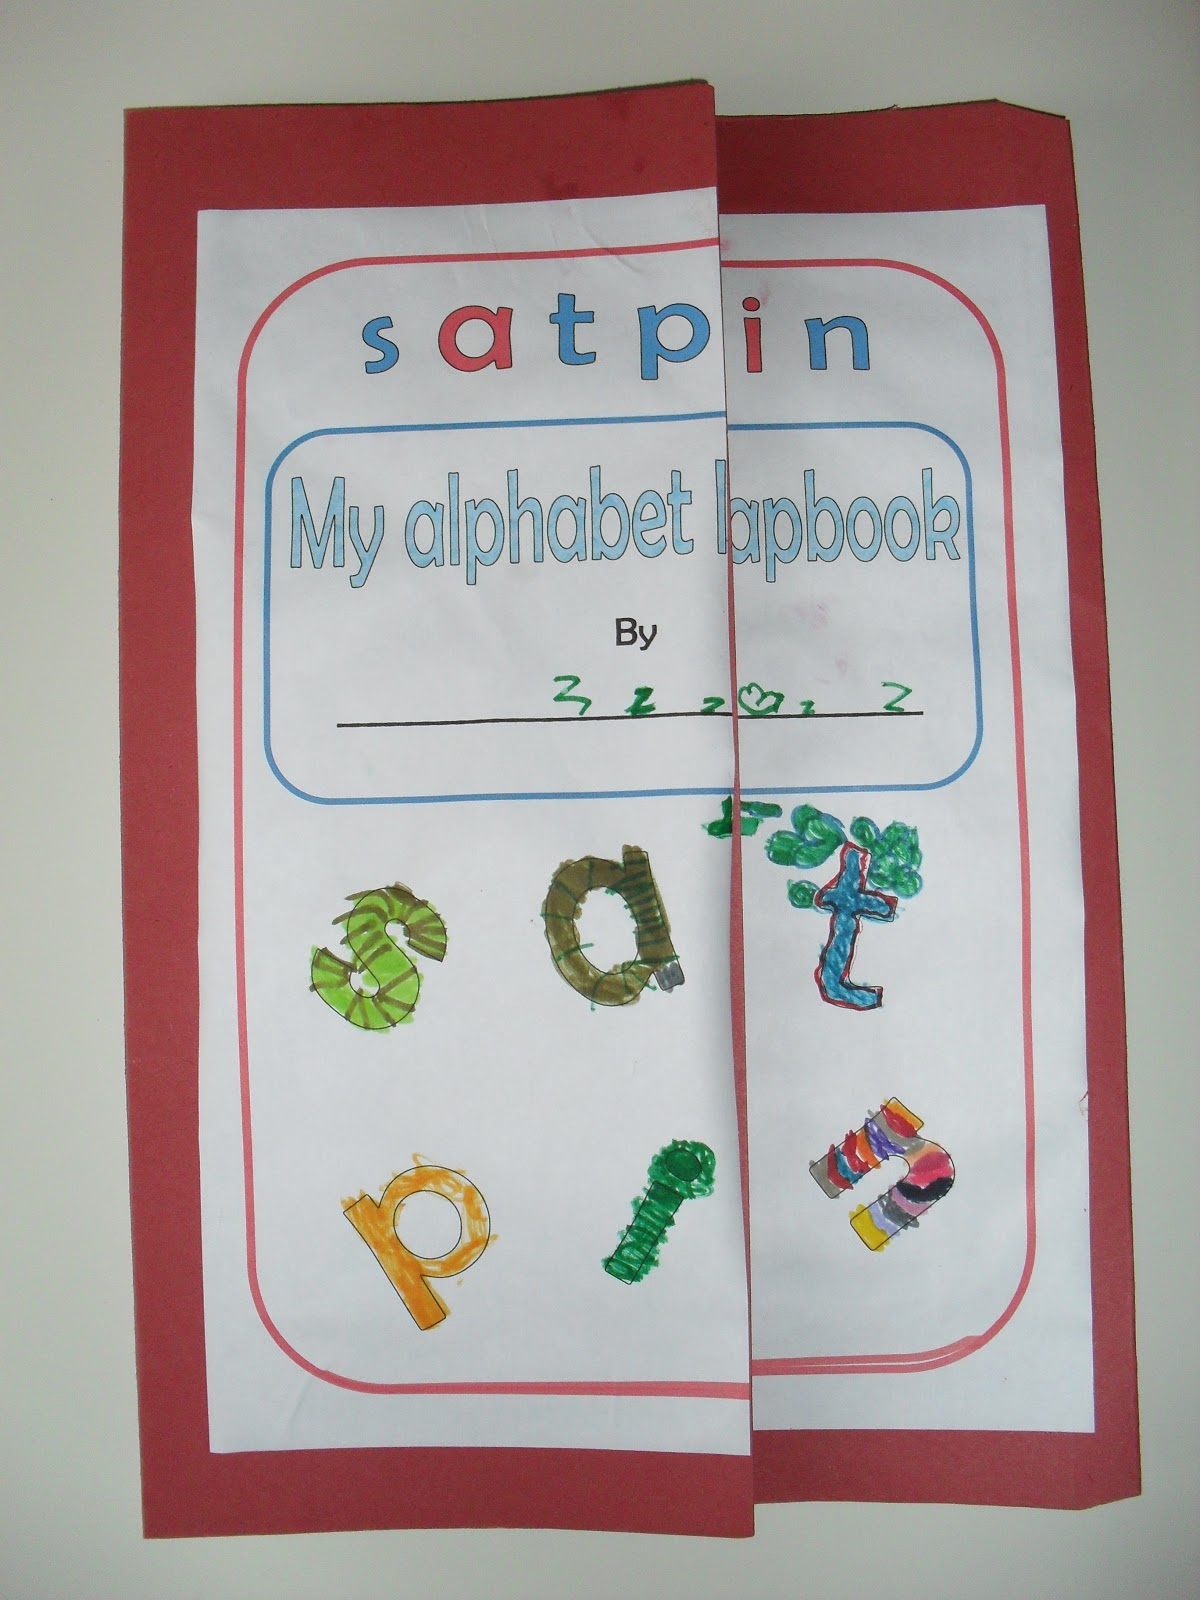 A Muslim Homeschool Jolly Phonics Lapbook With A